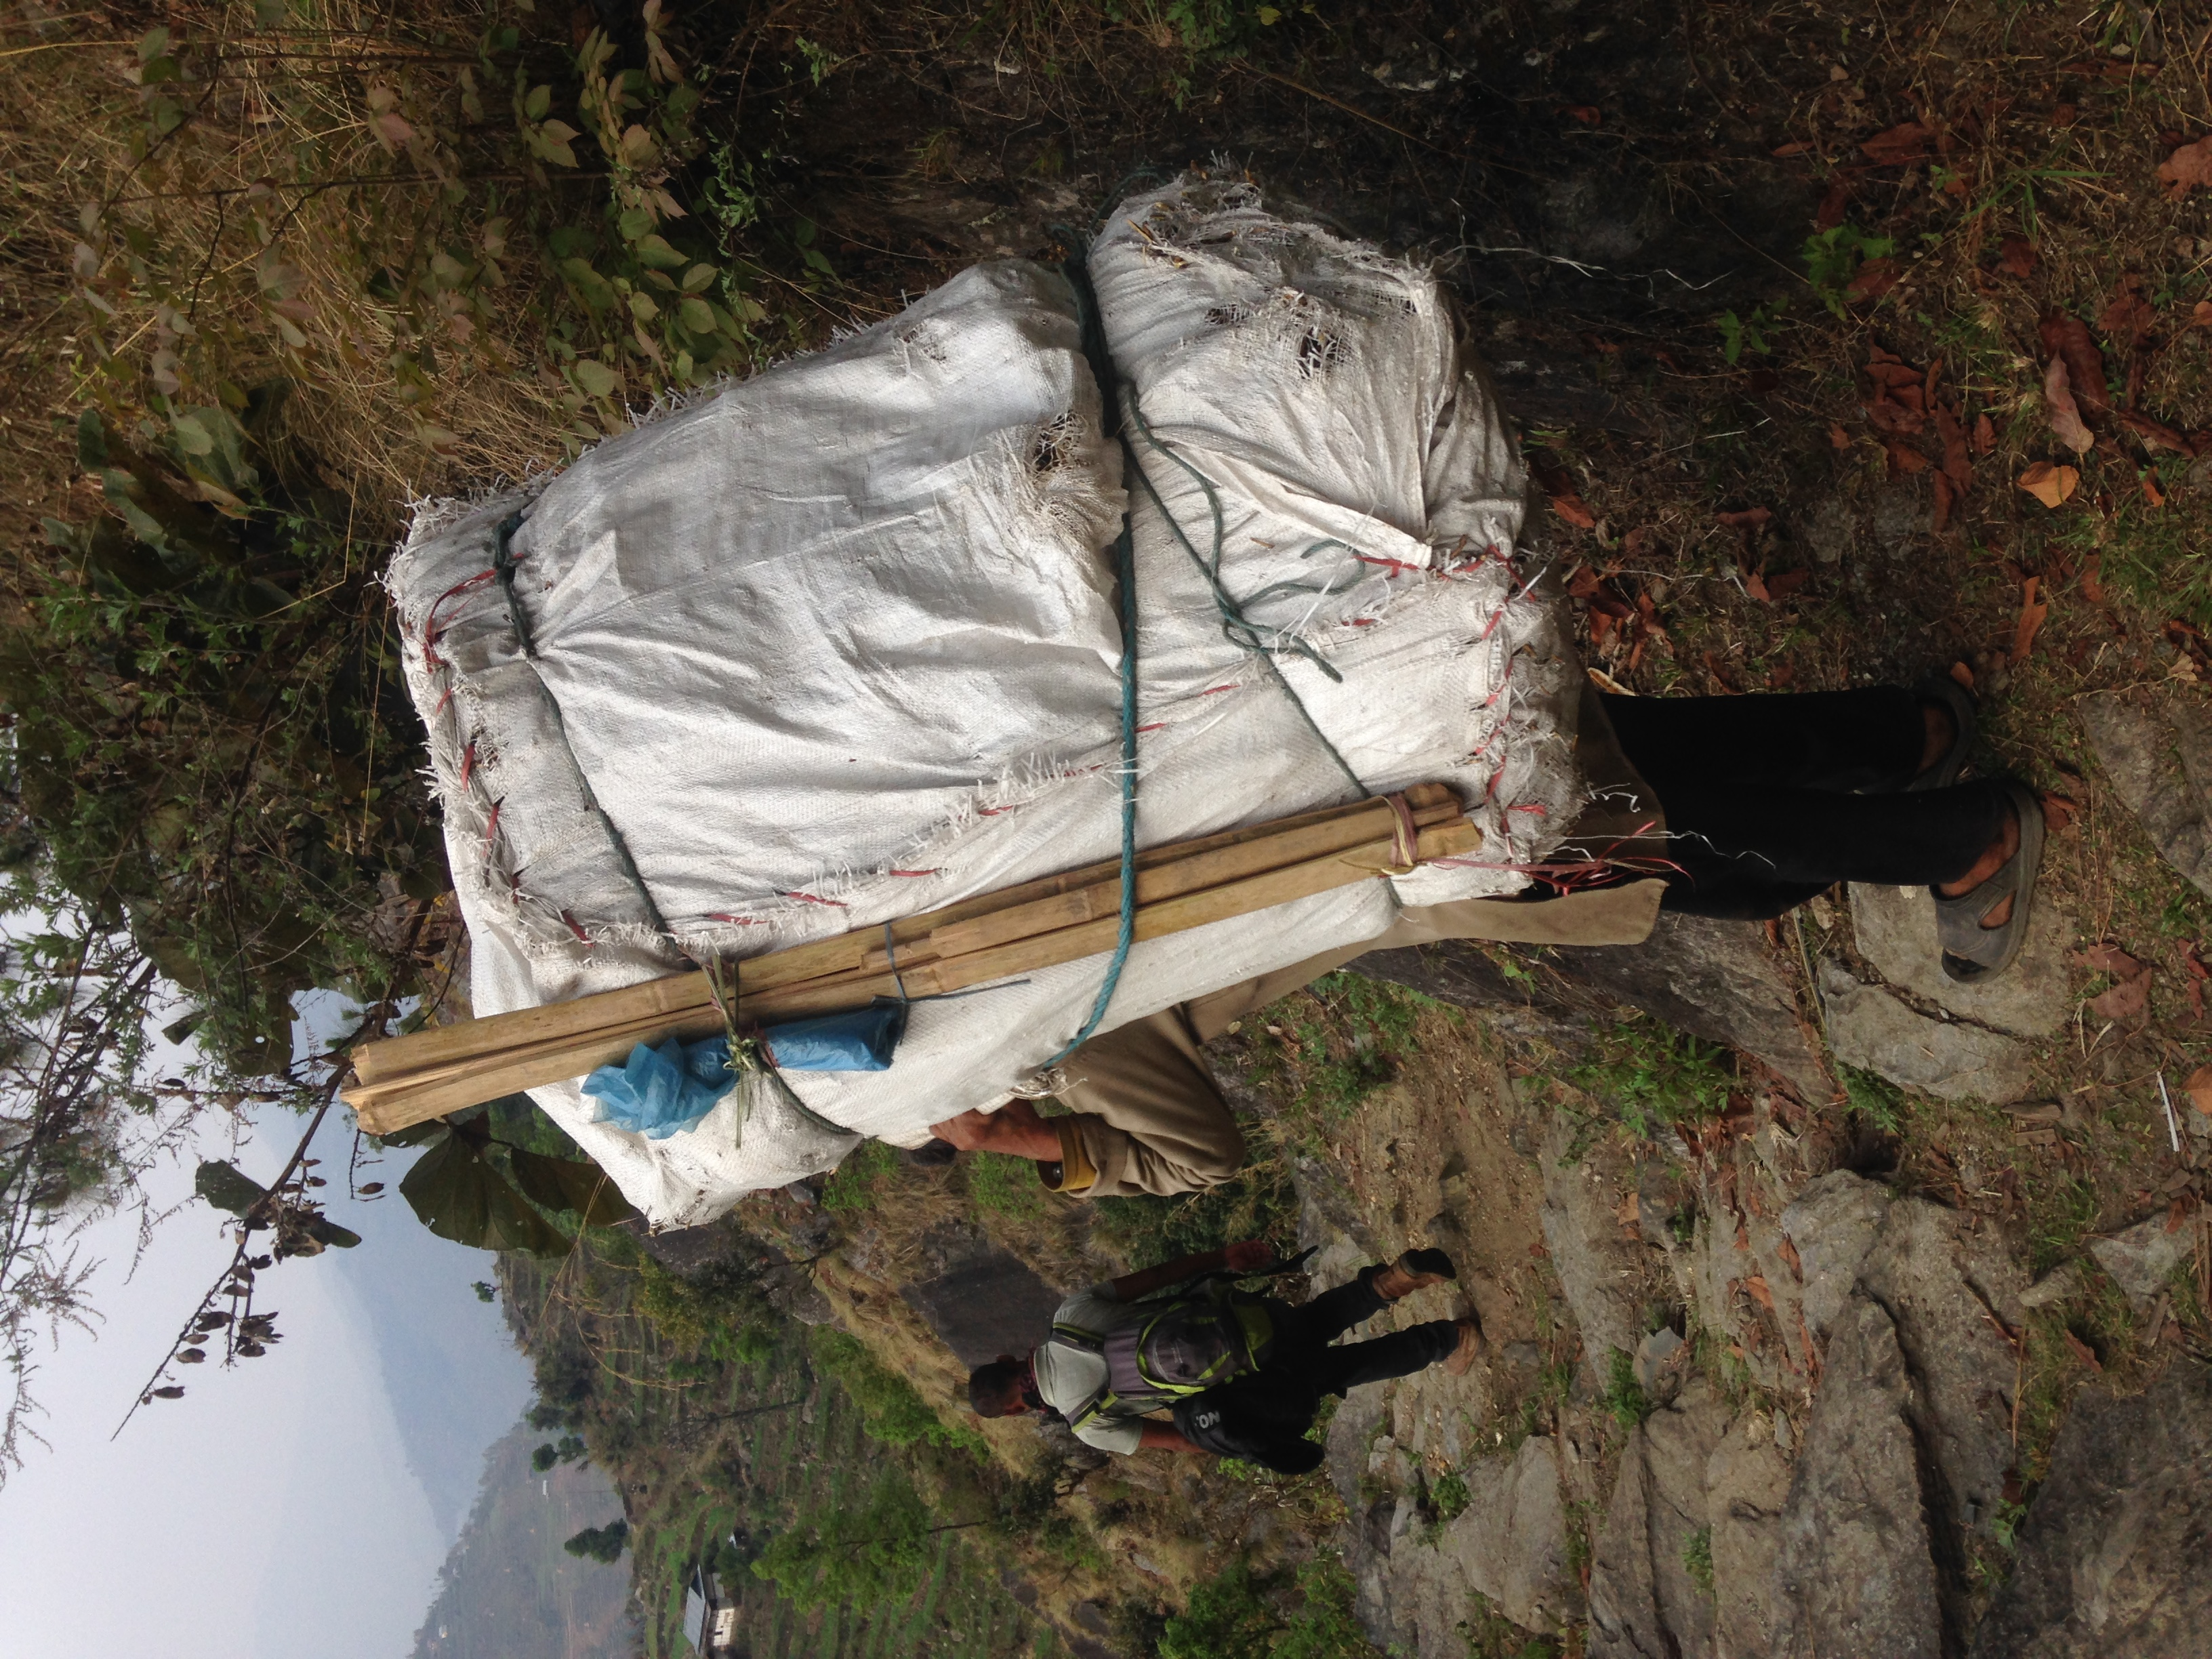 Nepali porters on the trail carrying items larger and often heavier than they are.